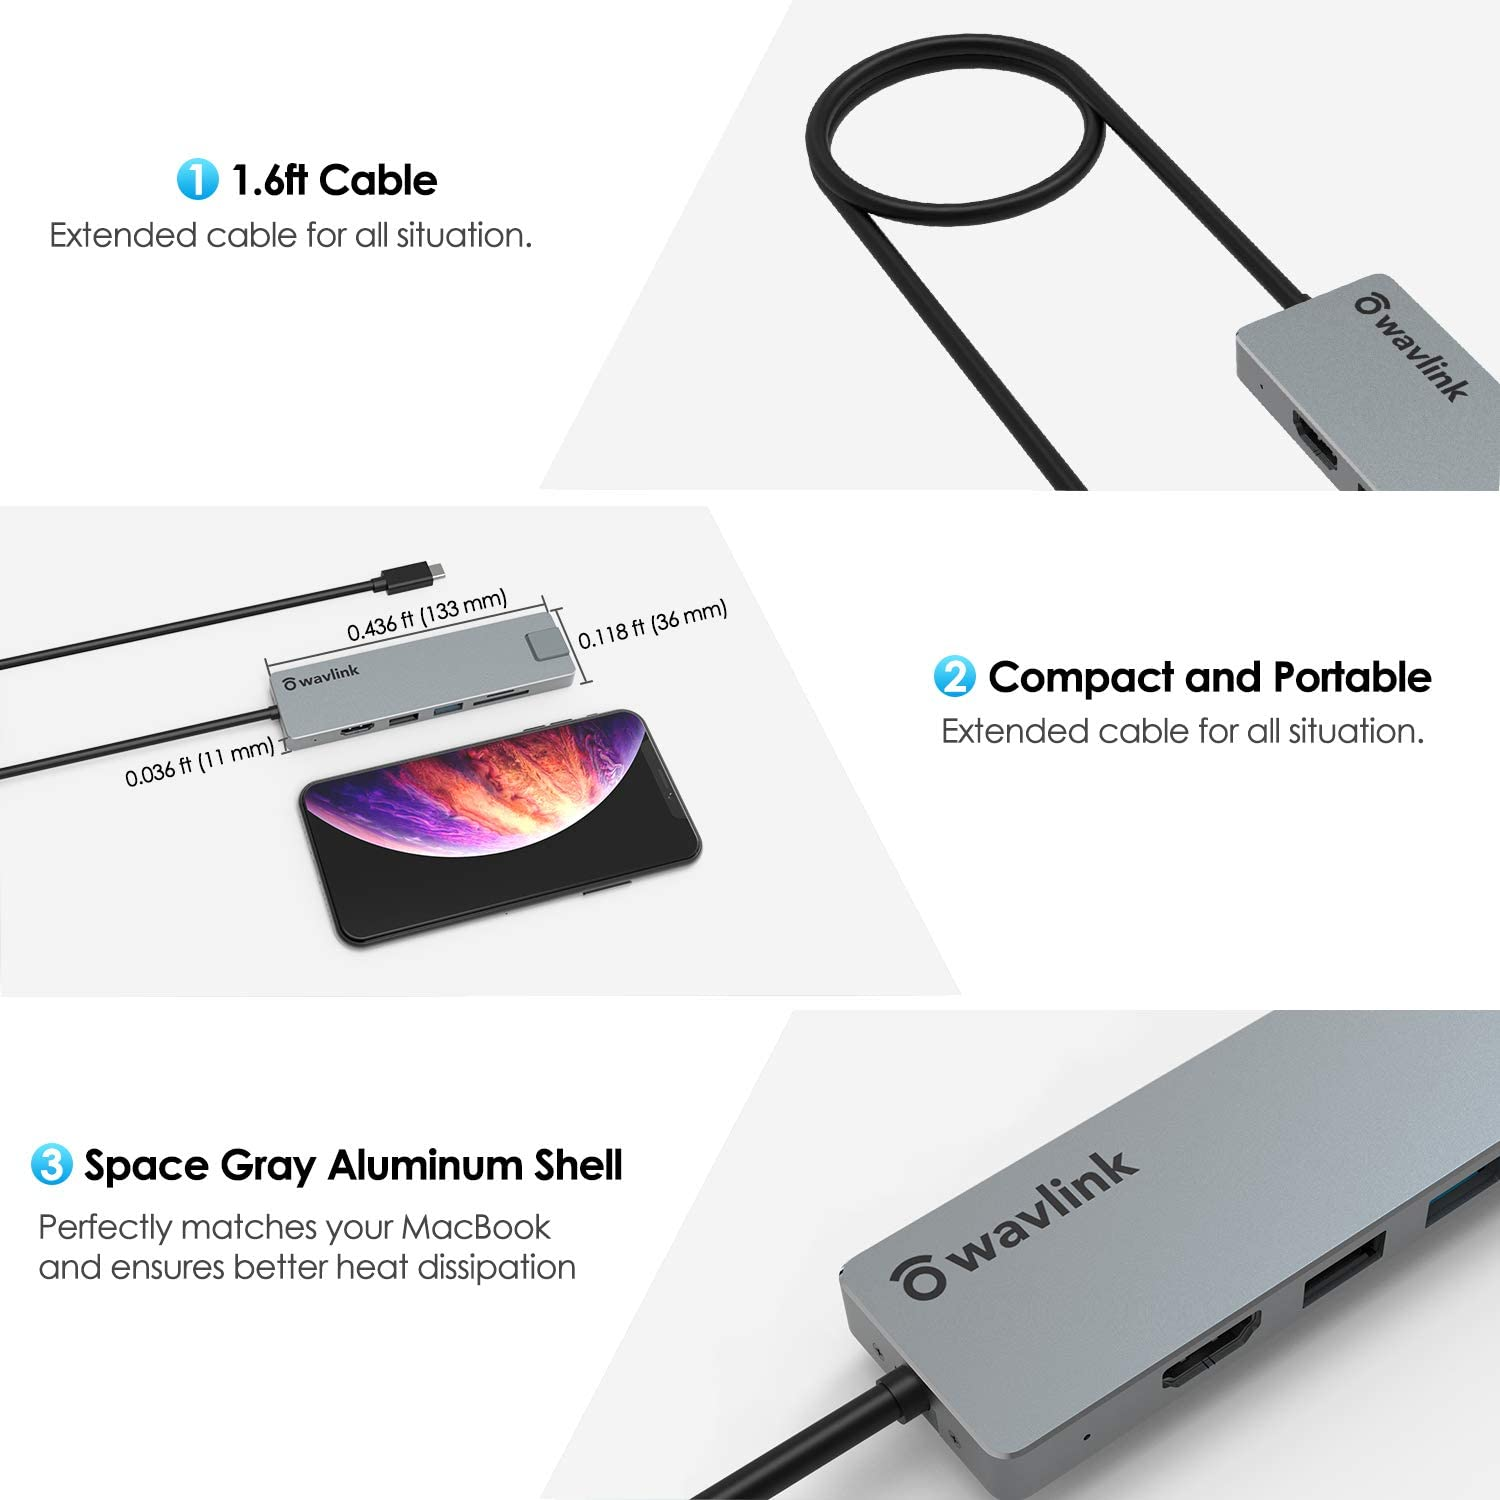 USB C 4K HDMI Adapter,WAVLINK Hub Multiport Adapter with 100W PD Power, USB 3.0, USB 2.0, RJ45 Gigibit Ethernet, SD/TF Card Reader Compatible for MacBook Pro, XPS More Type C Devices